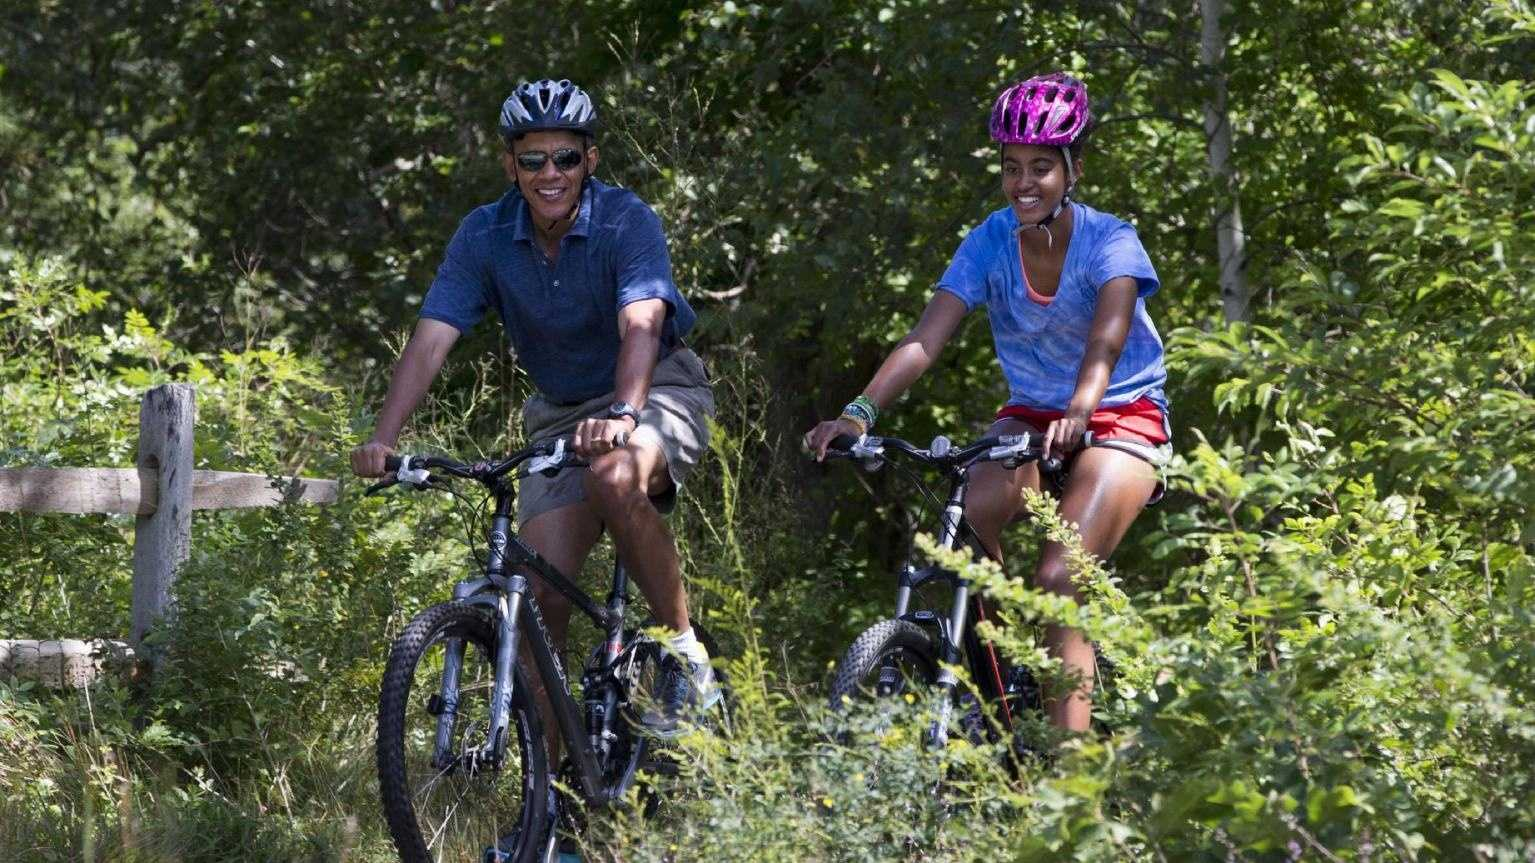 Malia Obama, right, followed by her father, President Barack Obama, ride their bikes in Manuel F. Correllus State Forest in West Tisbury, Mass., after first lady Michelle Obama, with daughter Sasha, passed by first, Friday, Aug. 16, 2013, during their family vacation on the island of Martha's Vineyard.